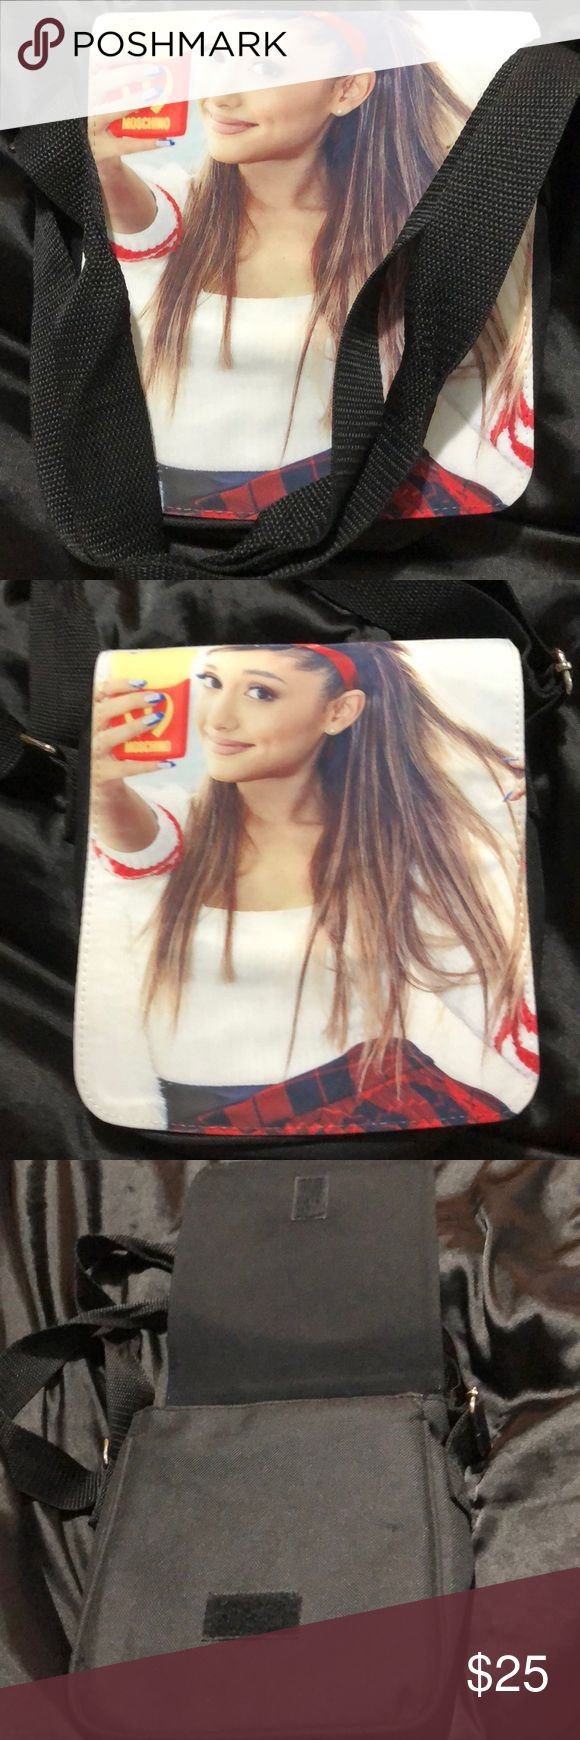 Ariana grande cross bag Not a lot of these bags made, but this ones available! New used once in Vegas other than that it's brand new! Ariana Grande Bags Crossbody Bags